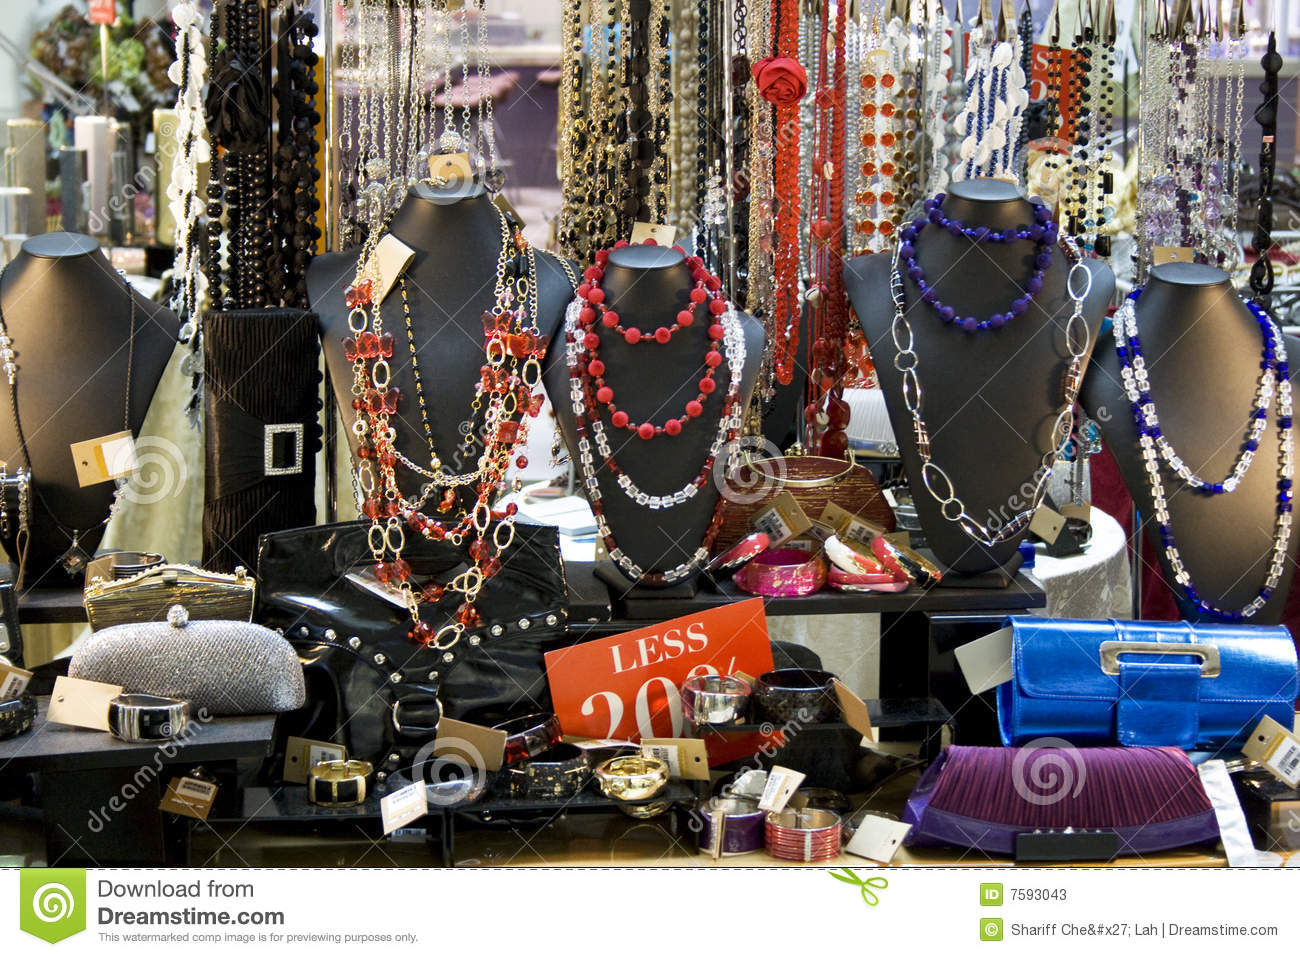 Showing 10,+ Women's Accessories Your ensemble deserves a little something extra, and ShopStyle's online accessories store is where you can shop for fabulous finds. Filled with stylish hats, sunglasses, belts, gloves, and scarves, it's the place with the hottest trends for every budget.